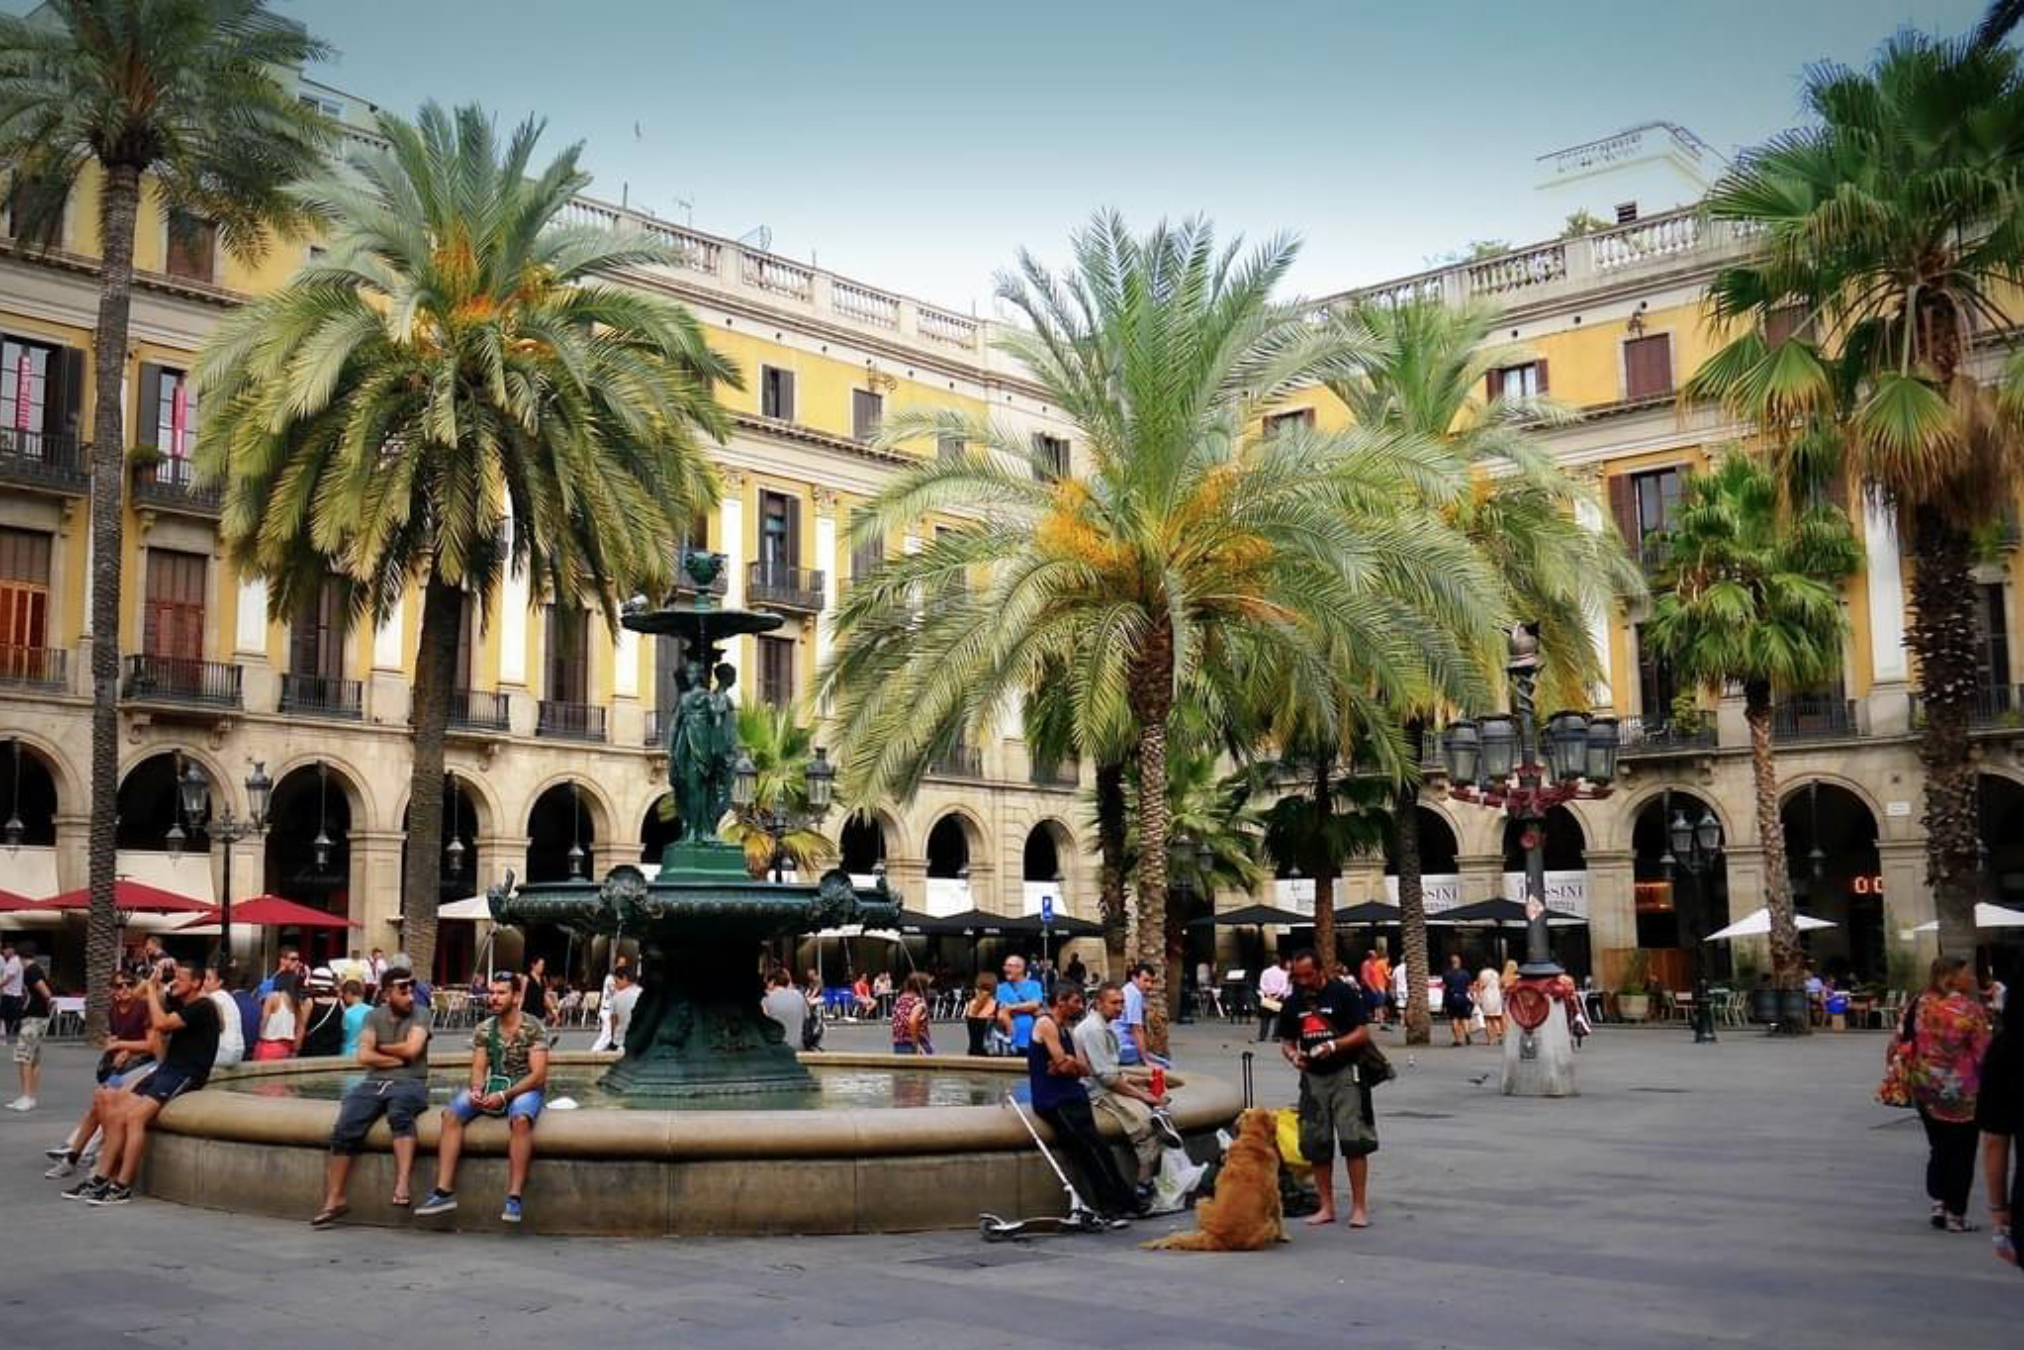 Application form for 3 month intensive ceramics course in Barcelona. Pictured: Plaza Real